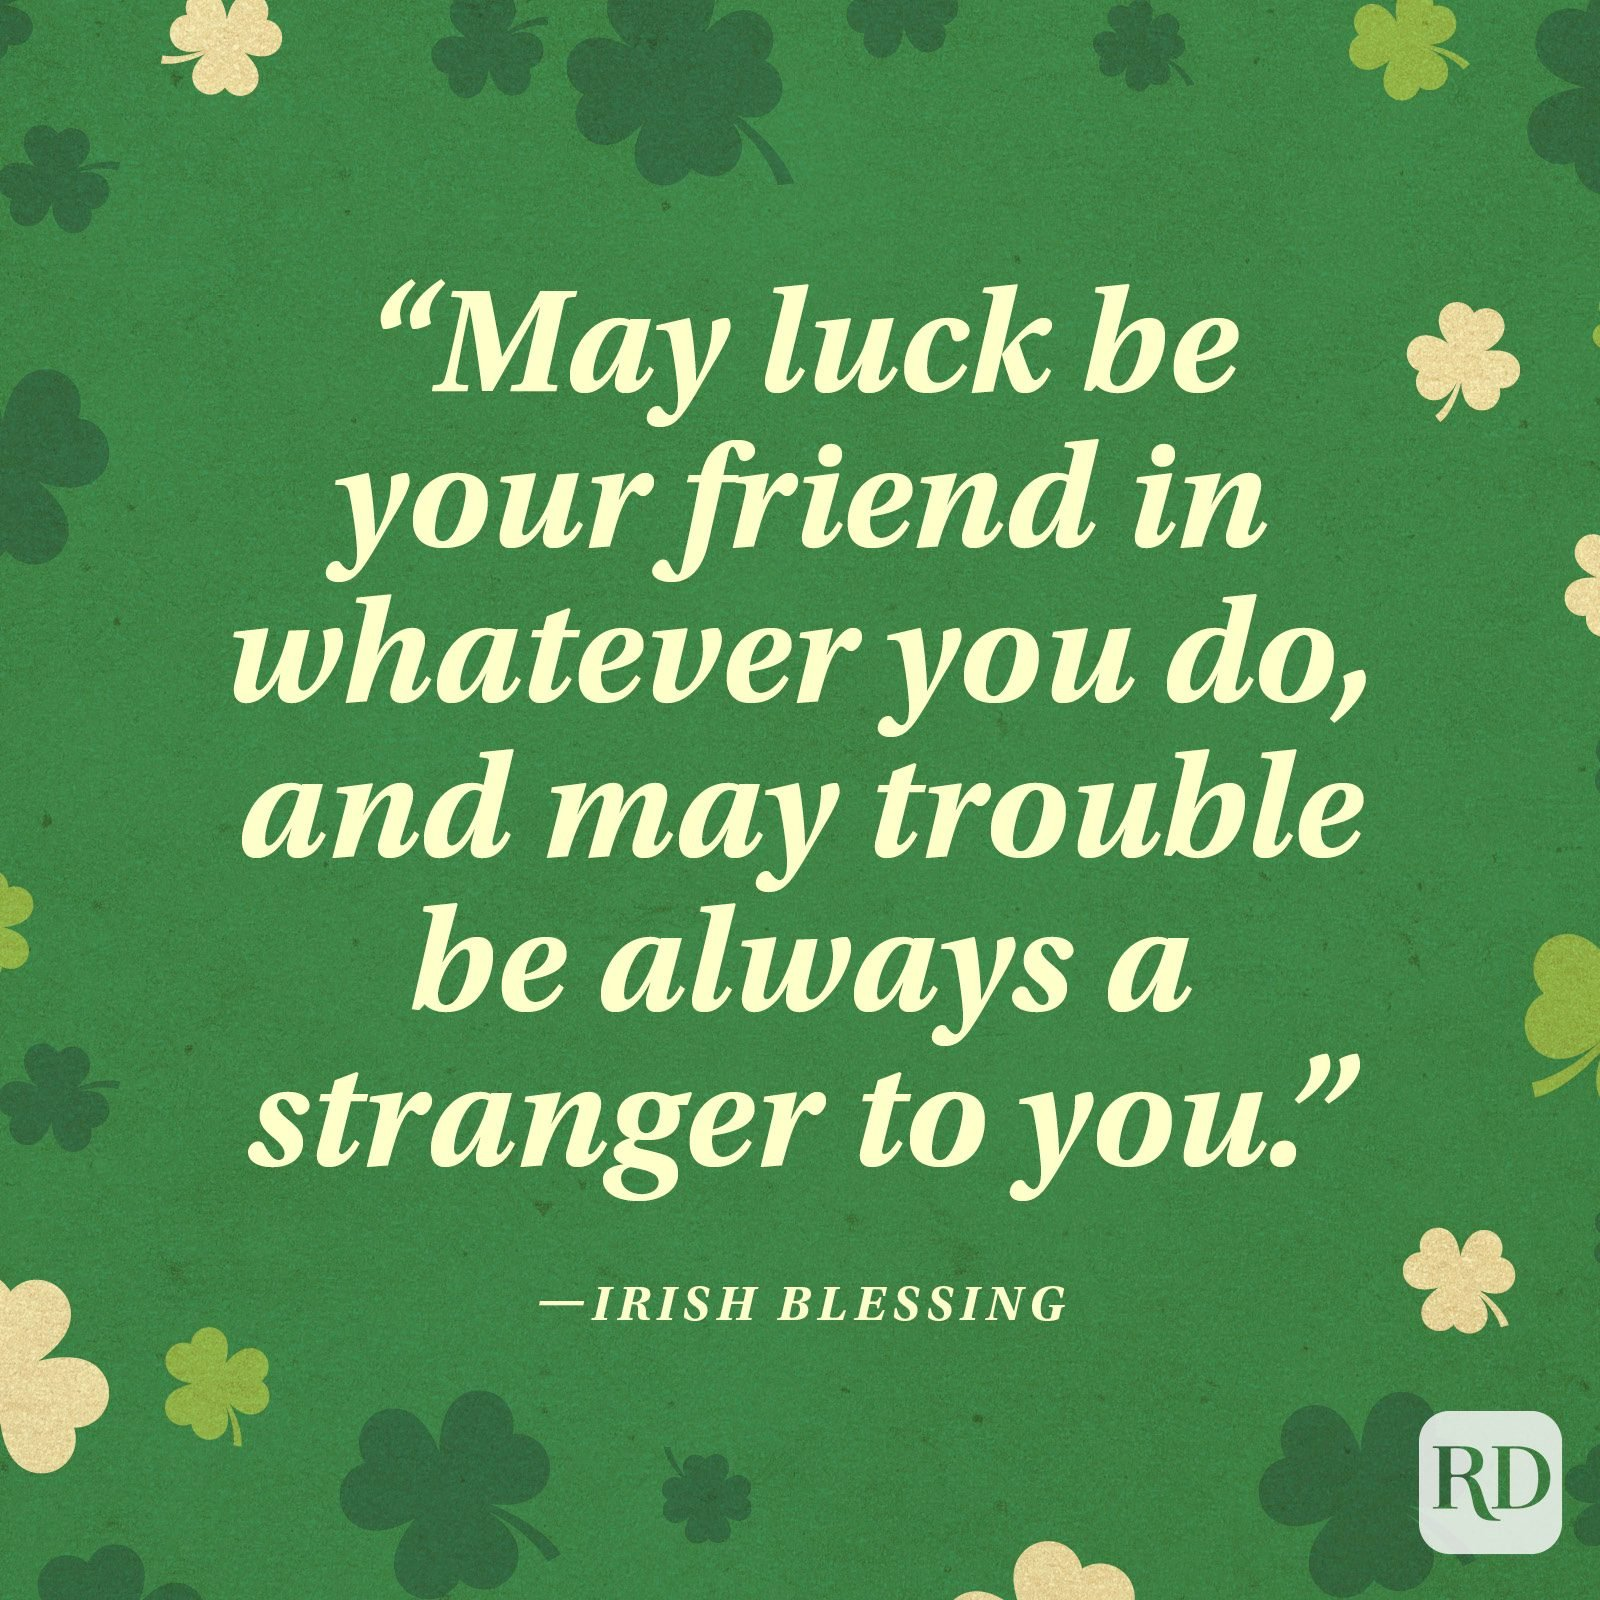 """May luck be your friend in whatever you do, and may trouble be always a stranger to you."" —Irish blessing"